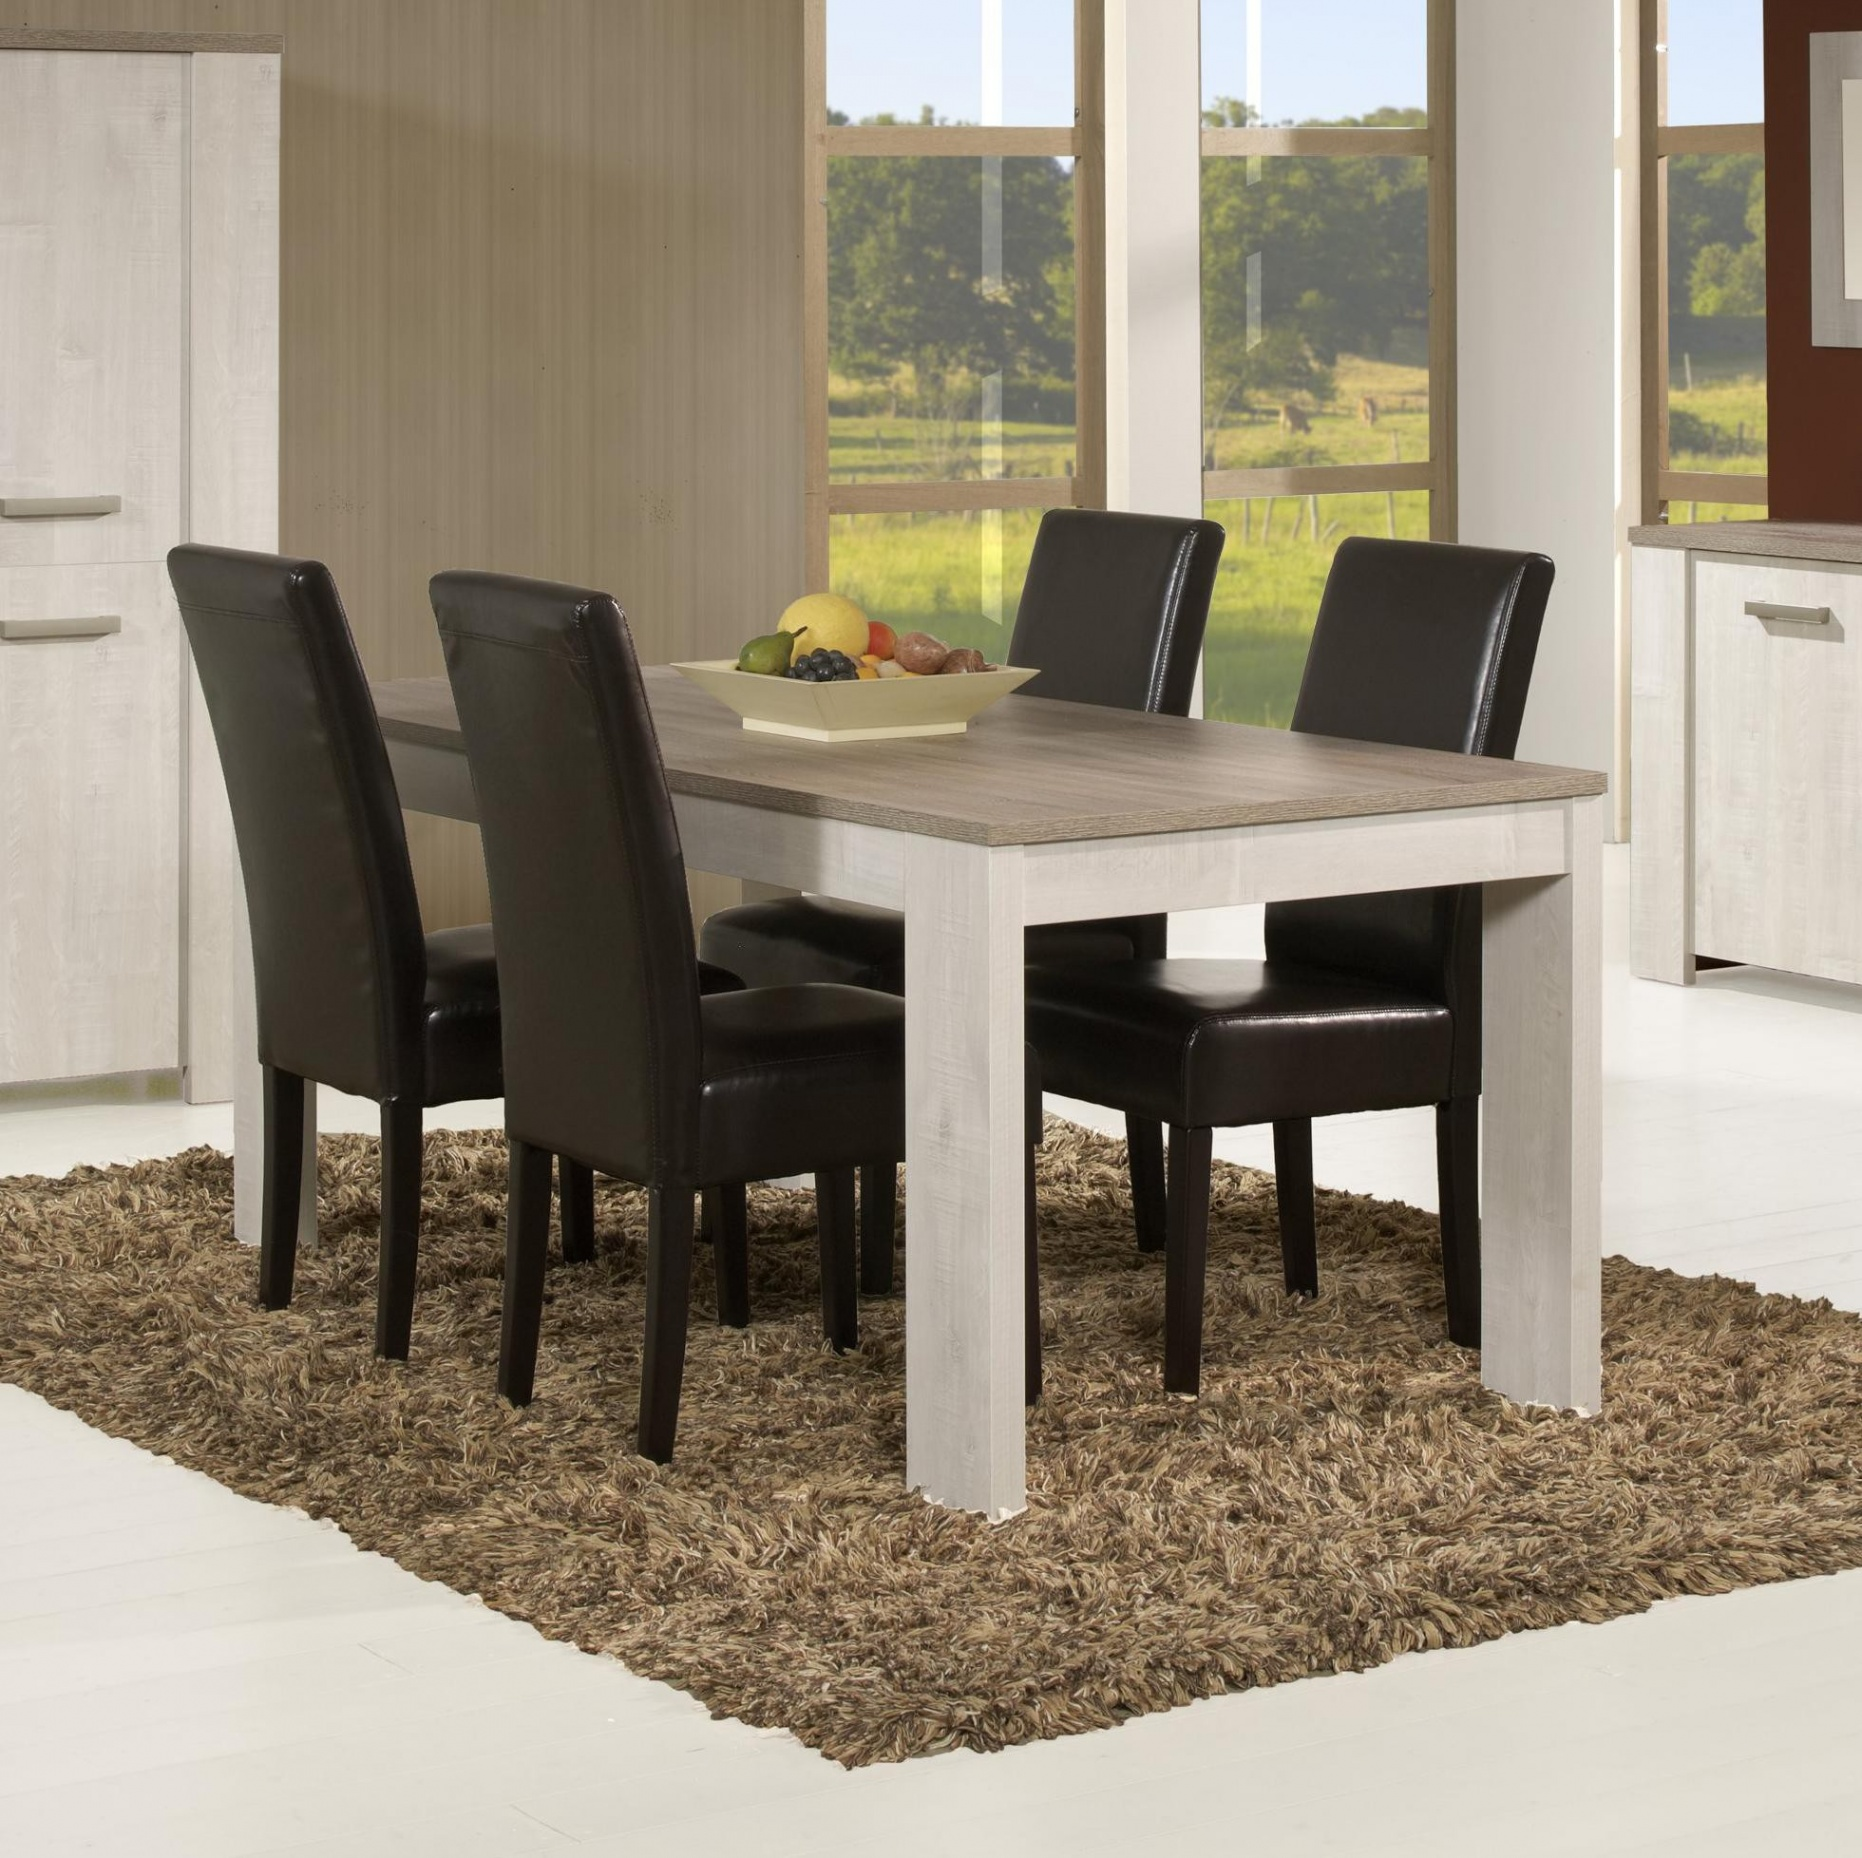 Petite Table Extensible Petite Table Salle A Manger Extensible